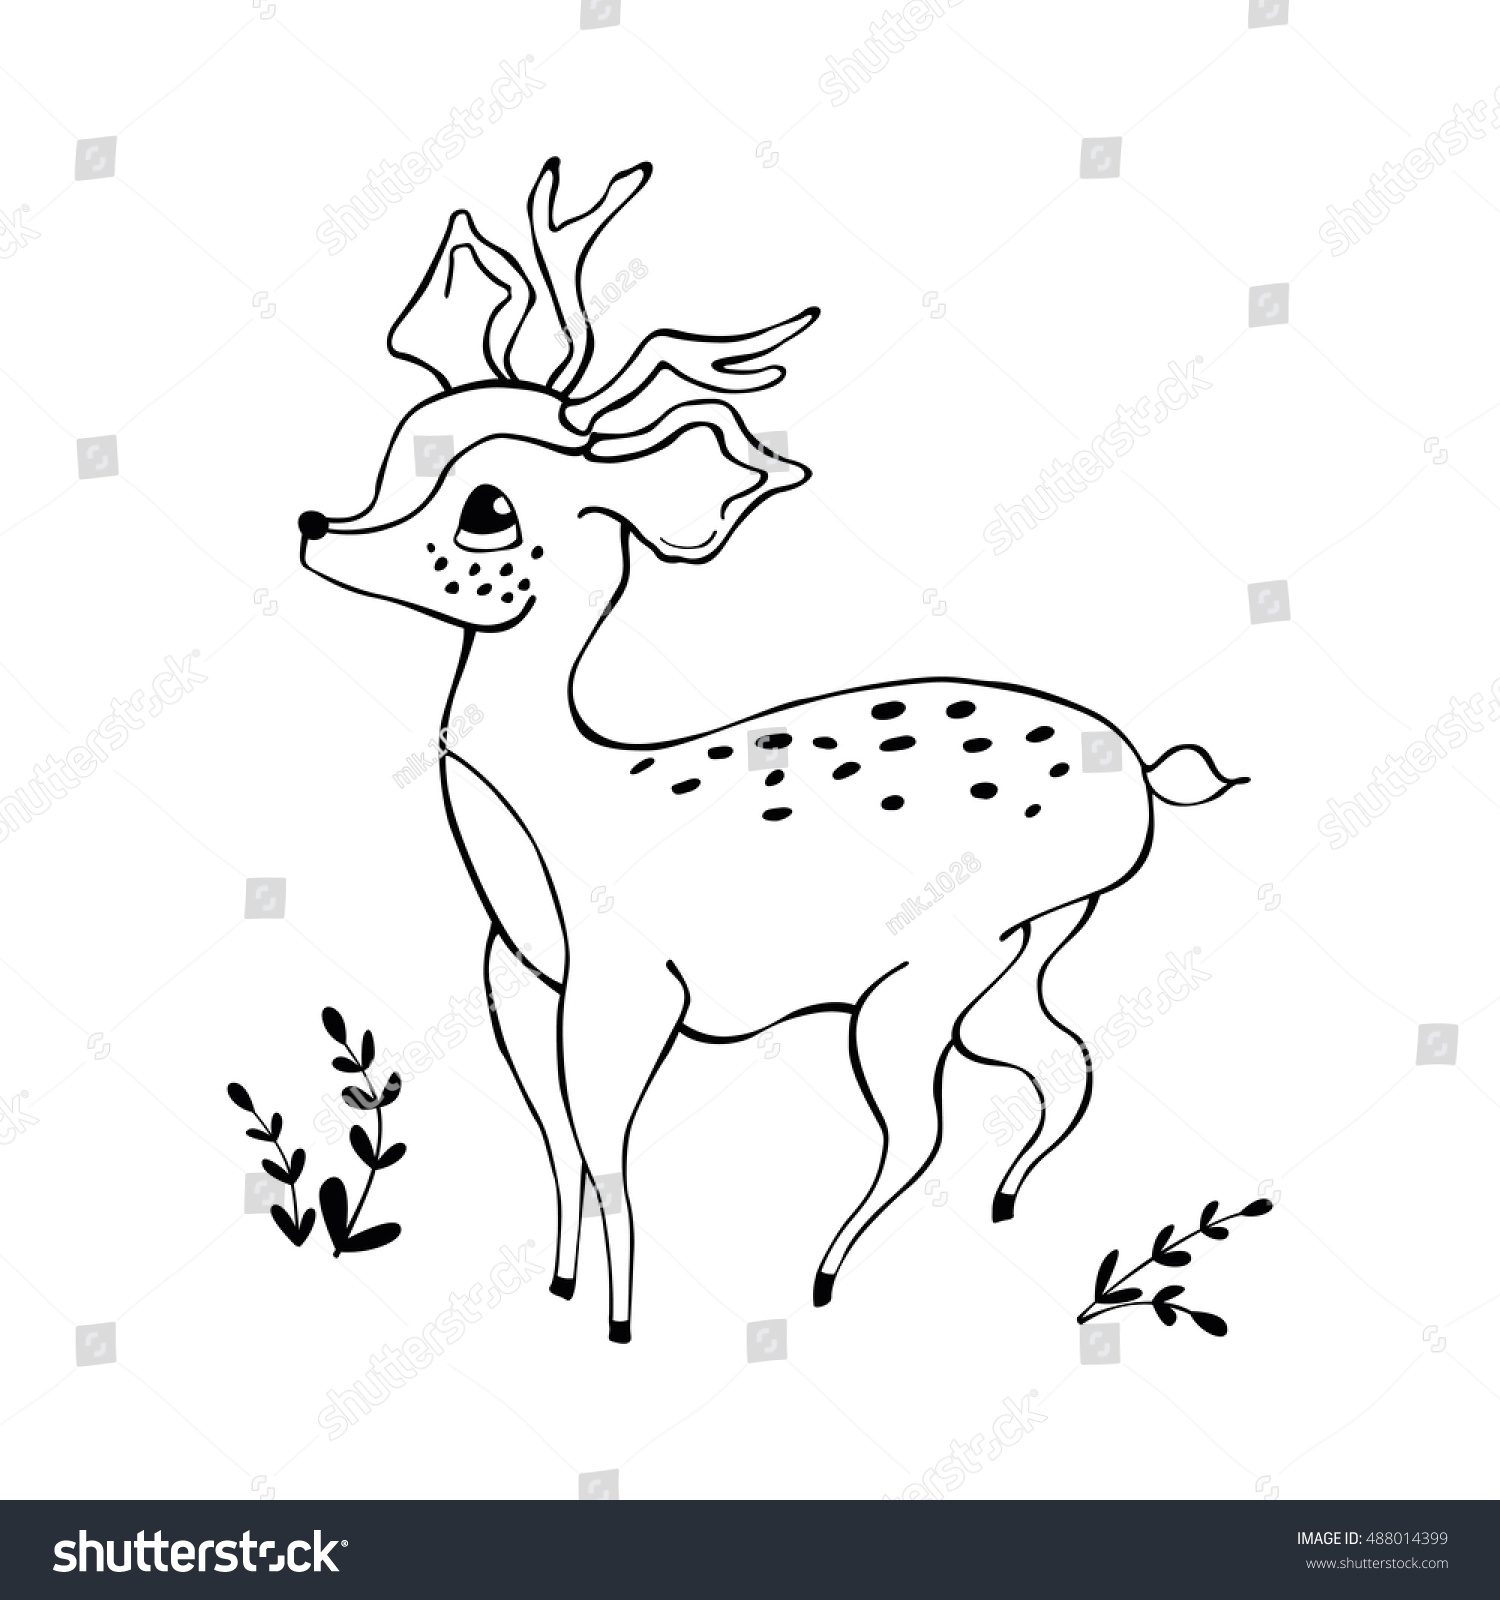 The zoology coloring book - Cute Baby Deer Coloring Book